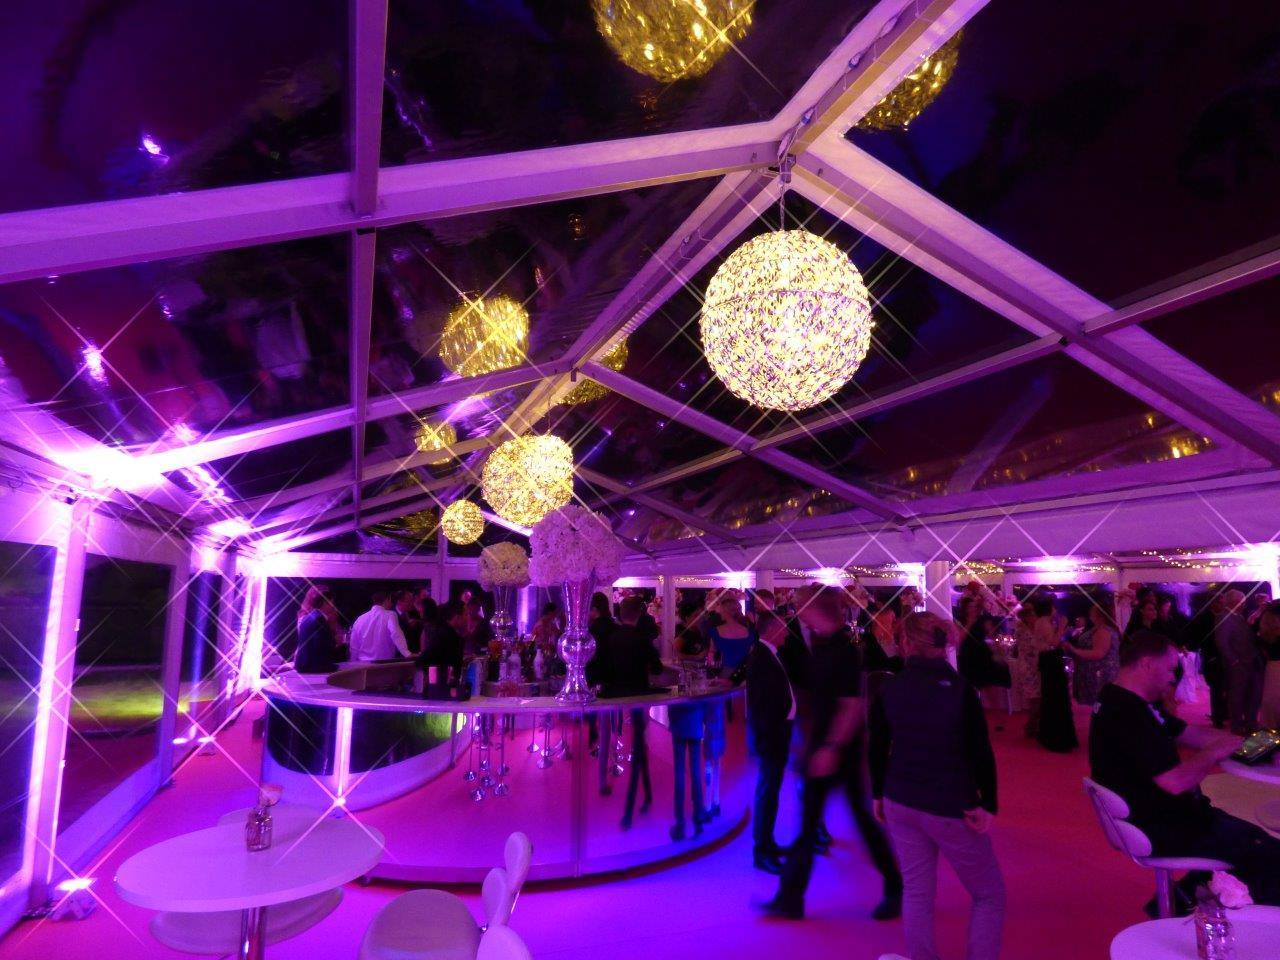 Party Marquee Hire Herts, Beautiful open roof Marquee Hire, Stunning Decoration.